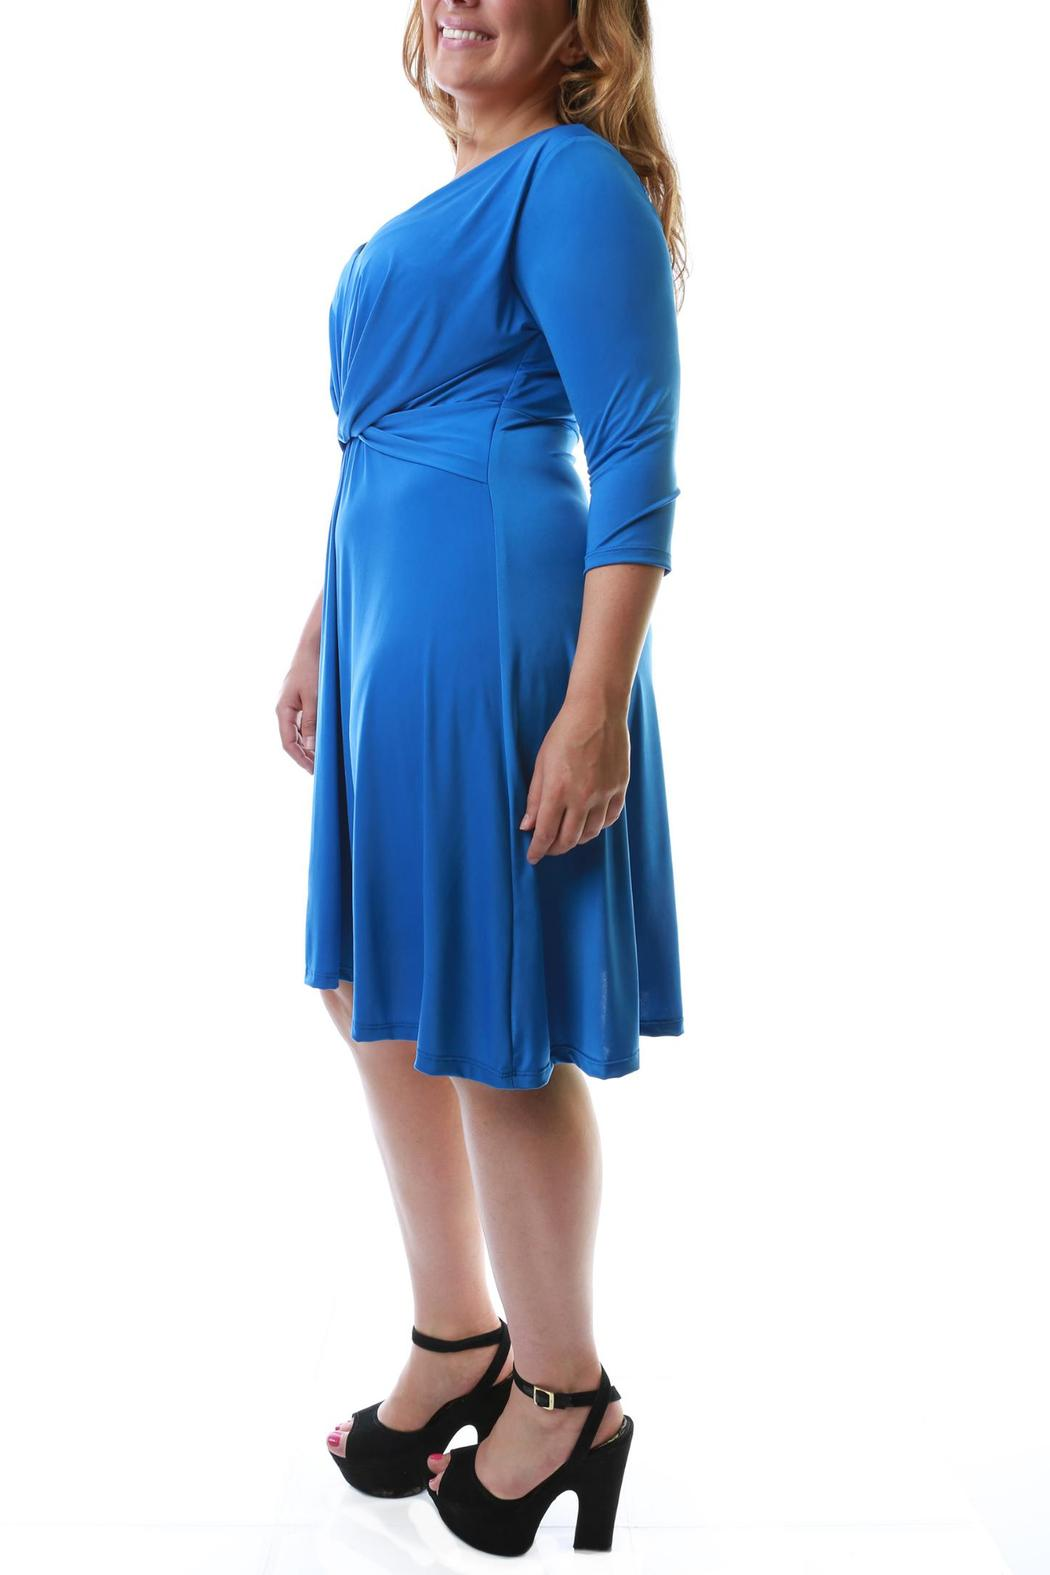 Plus size clothing stores in fresno ca